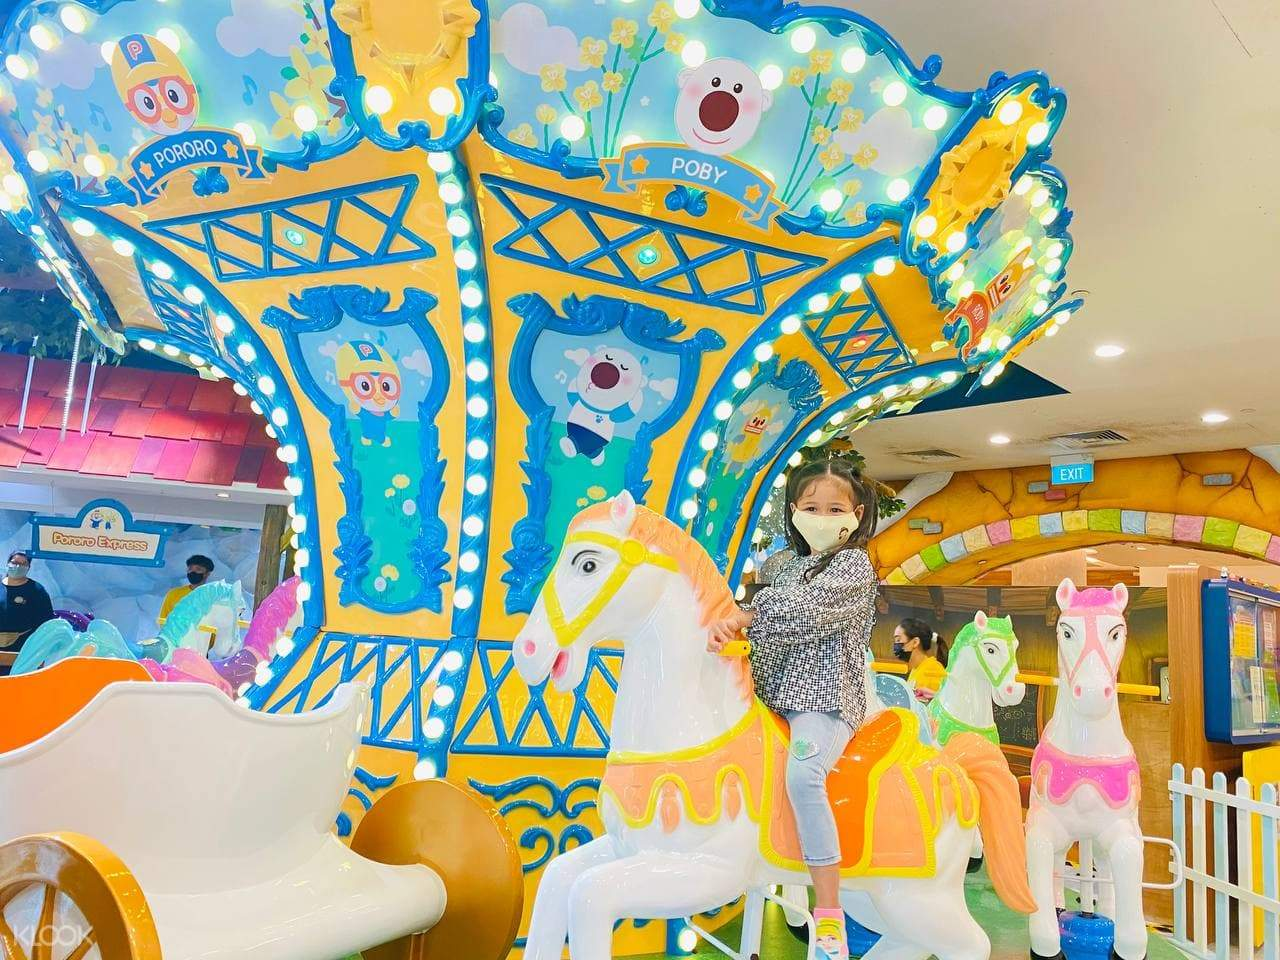 Hop on Pororo Park Singapore's new attraction, the Pororo & Friends' Gallop Station for a fun adventure!